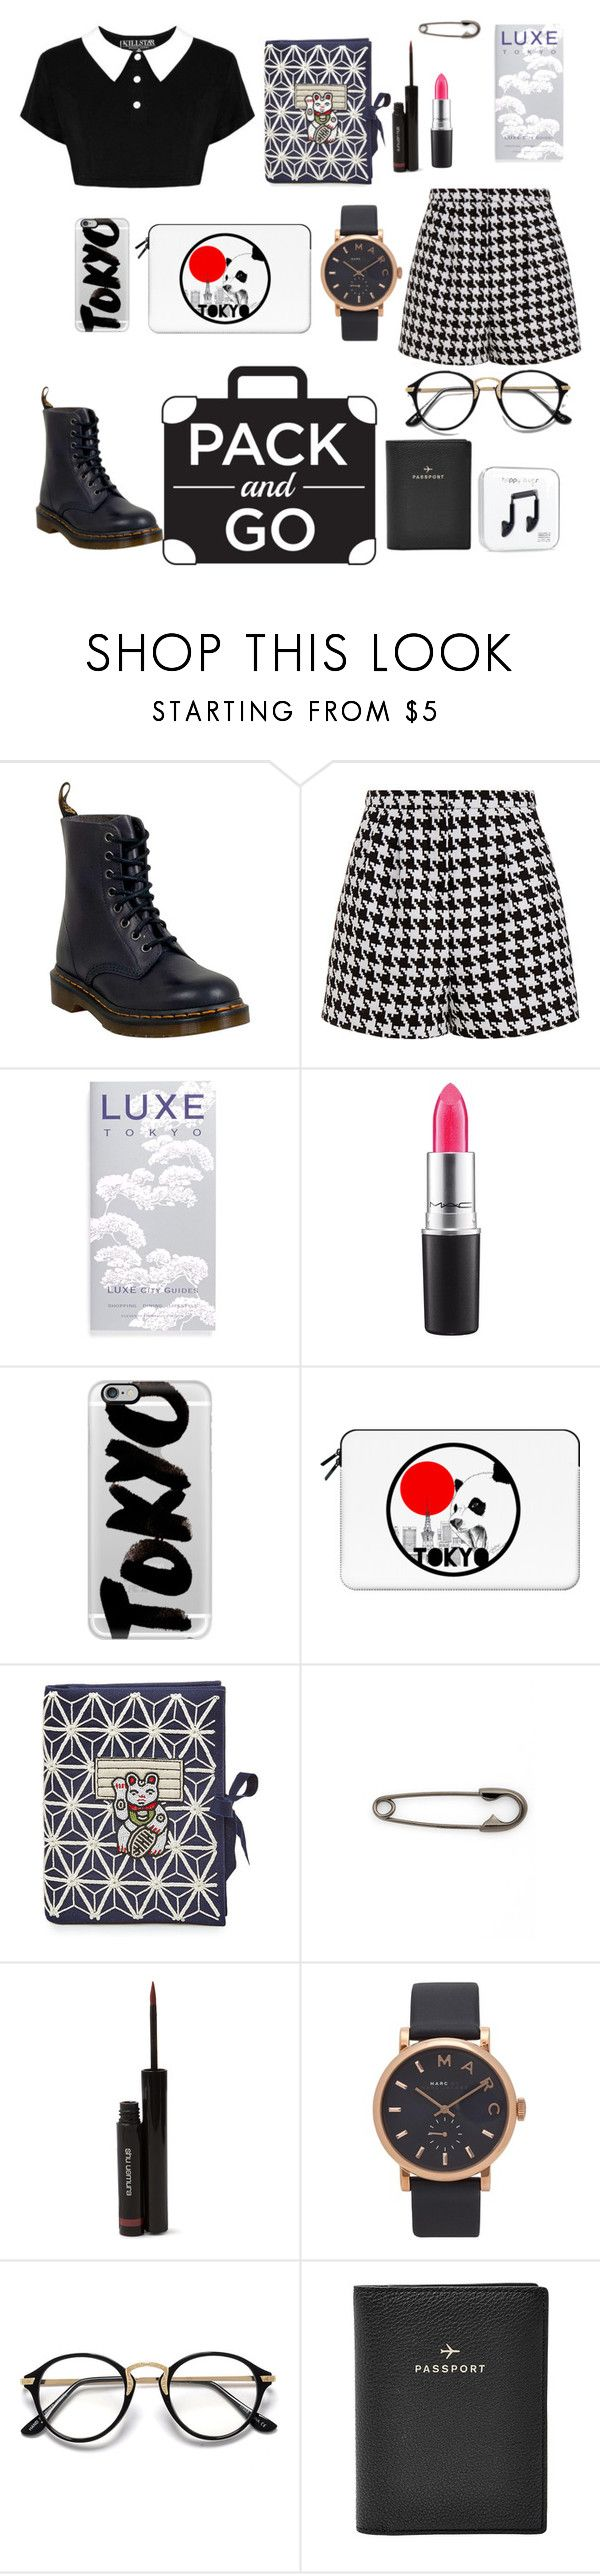 """""""Pack And Go"""" by liarna-roccella ❤ liked on Polyvore featuring Dr. Martens, Emma Cook, Luxe City Guides, MAC Cosmetics, Casetify, Olympia Le-Tan, Julien David, shu uemura, Marc Jacobs and FOSSIL"""